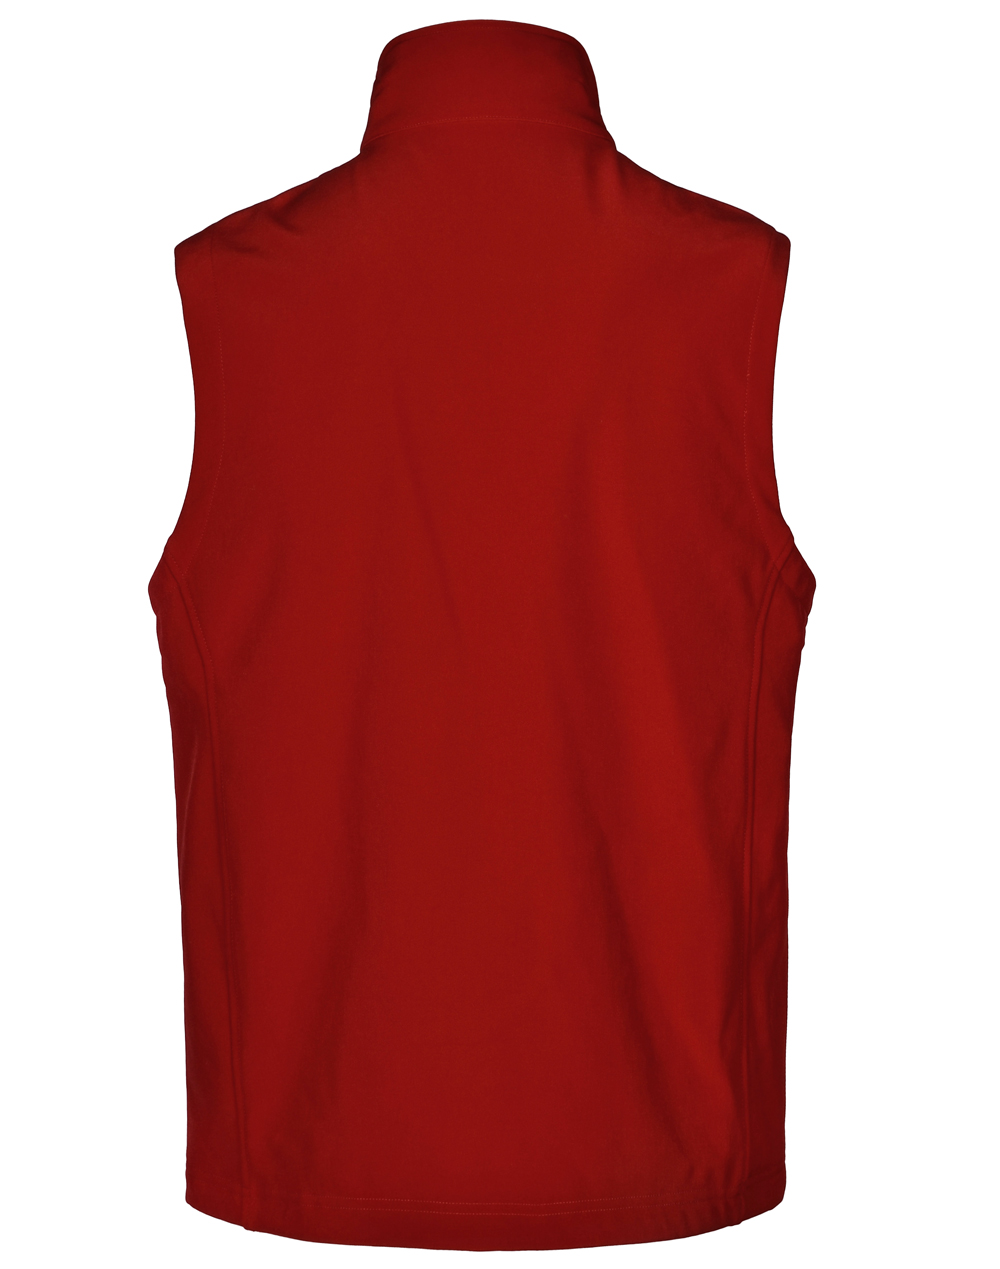 https://s3-ap-southeast-1.amazonaws.com/ws-imgs/OUTWEAR/JK25_Red_Back_l.jpg